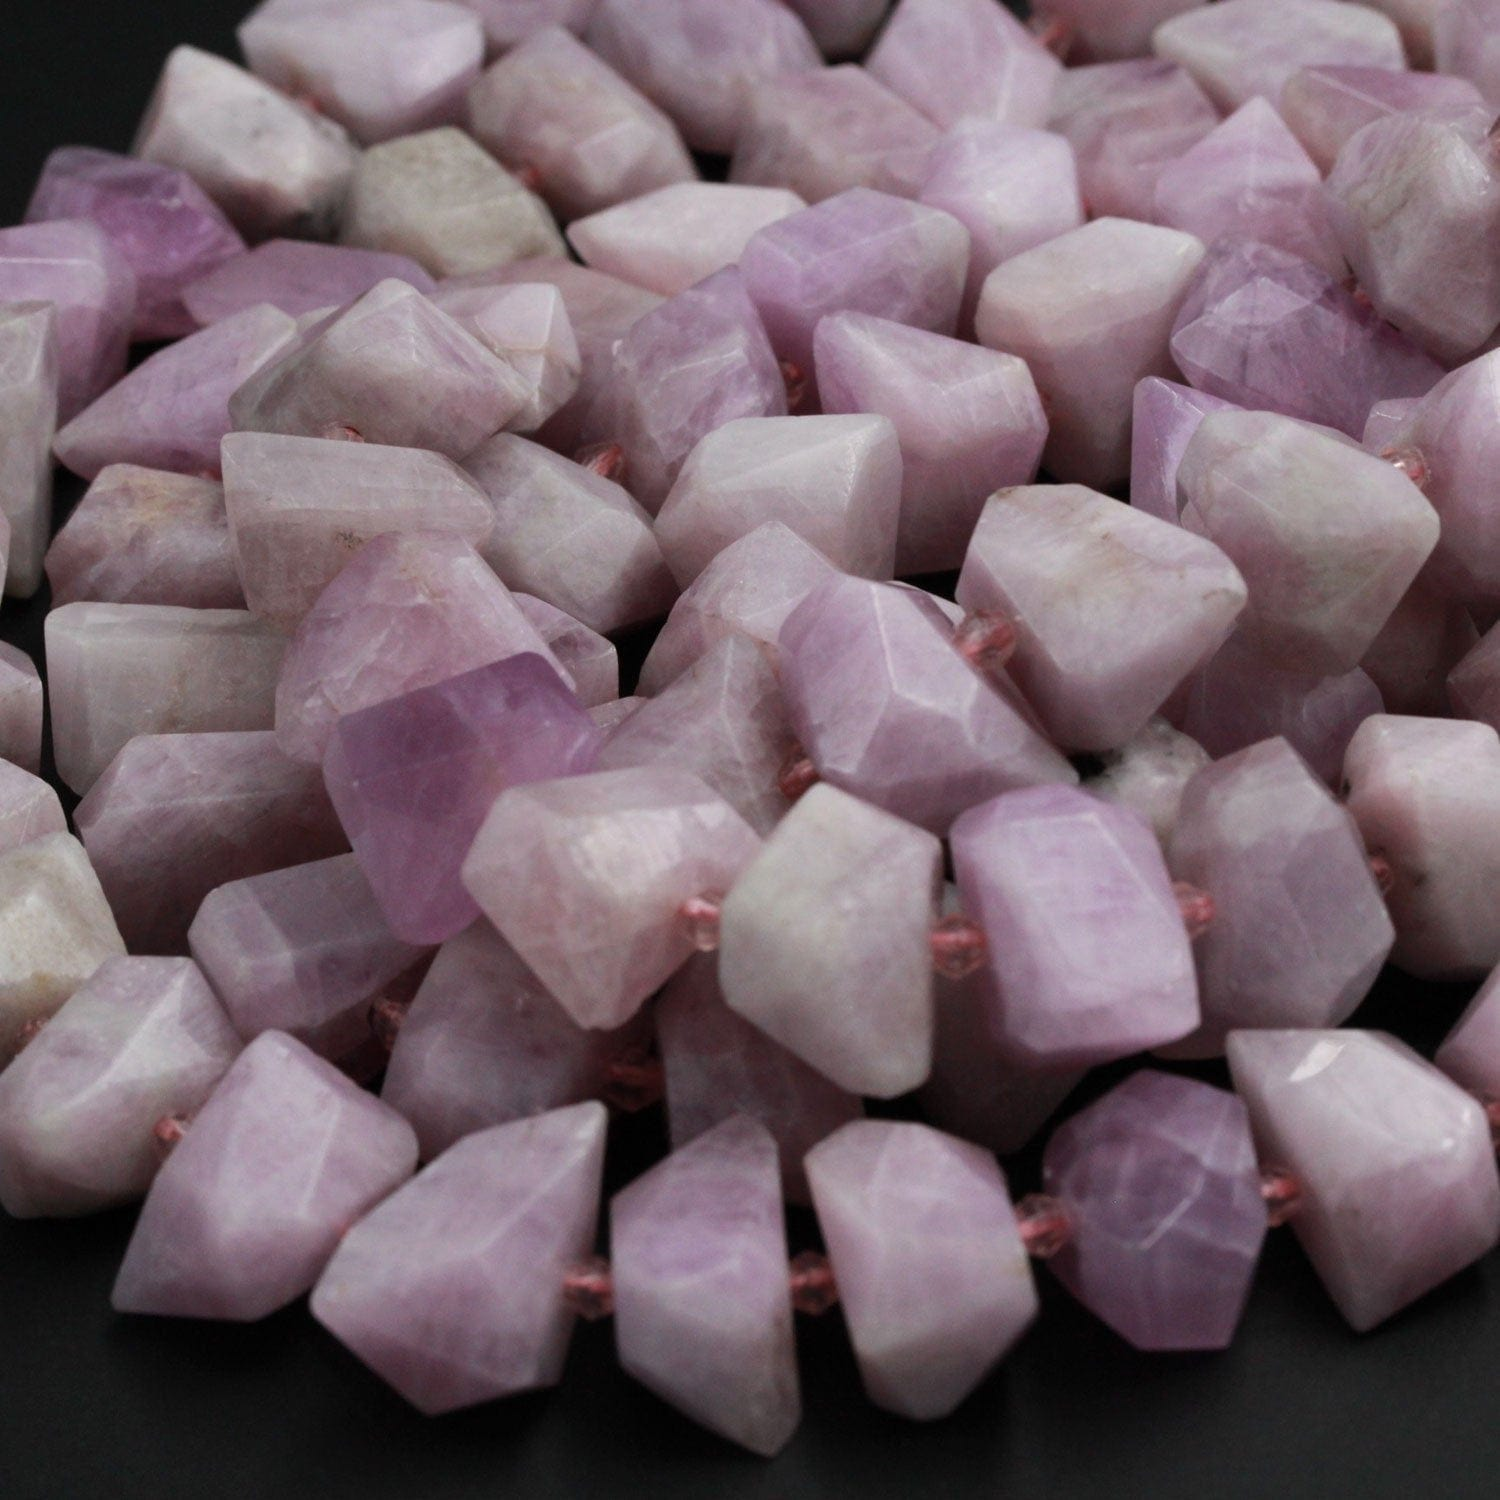 "Natural Kunzite Bead Chunky Large Faceted Rectangle Nugget Pink Violet Purple Gemstone Vertically Drilled Focal Bead High Quality 16"" Strand"